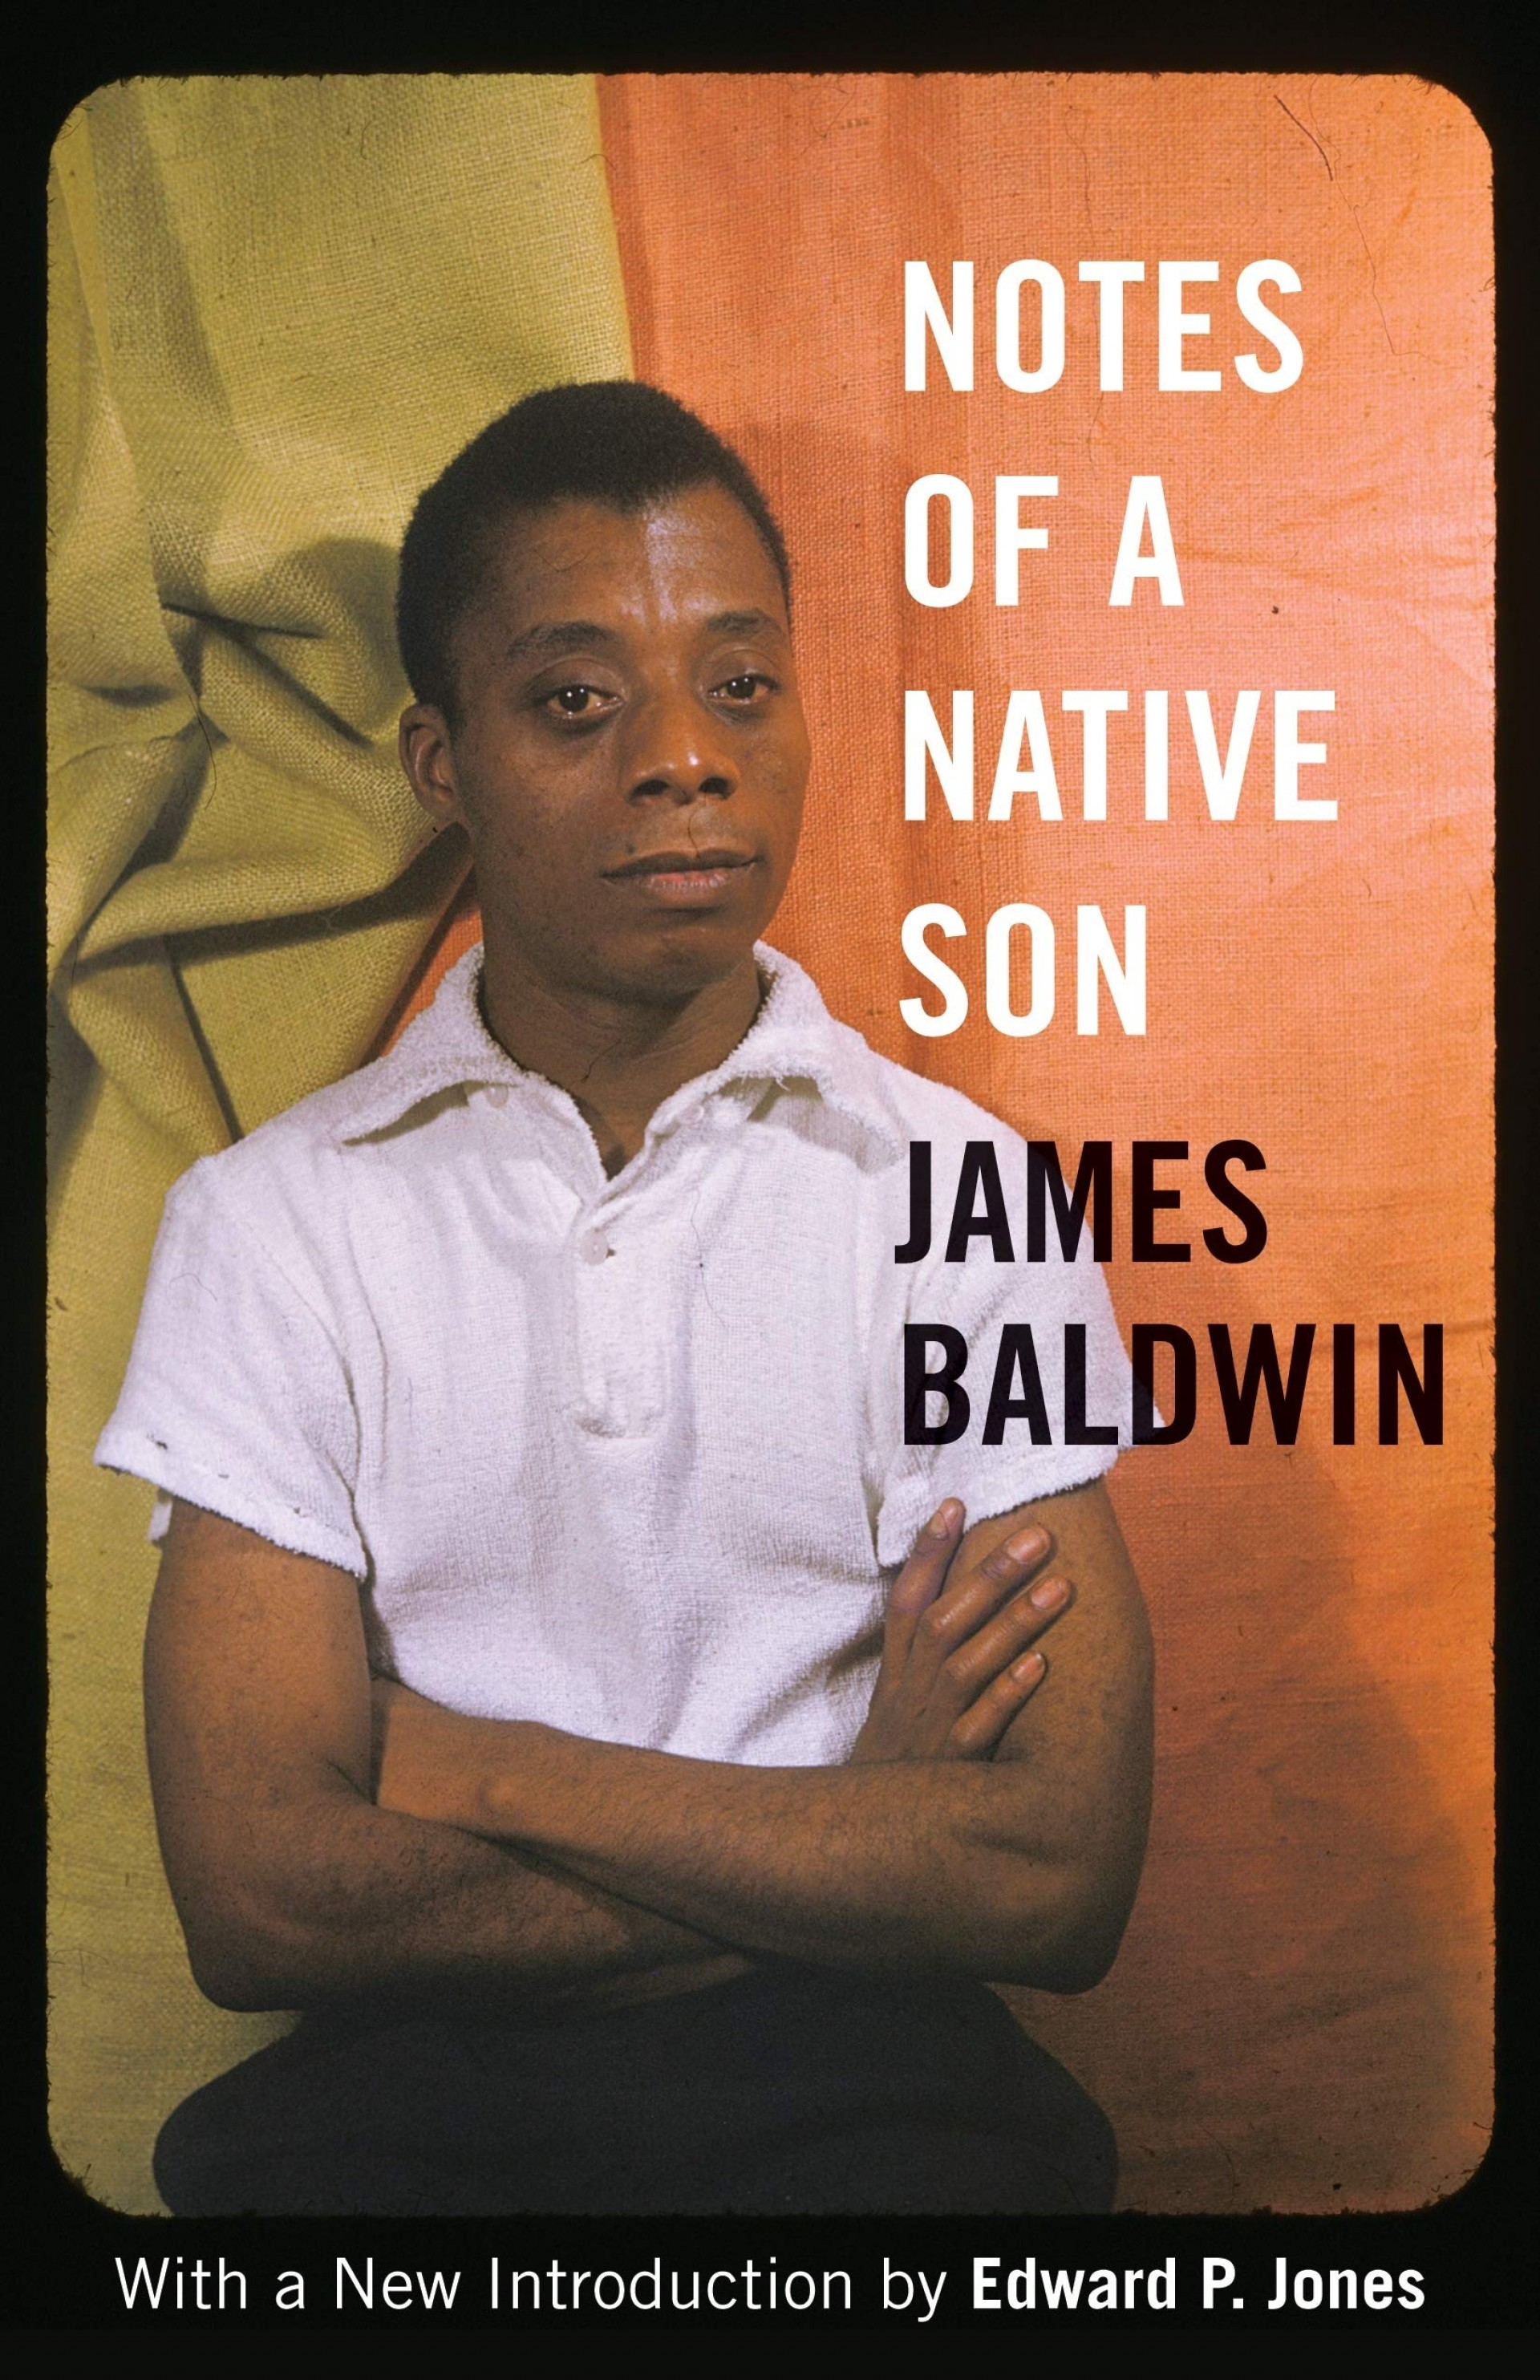 014 Essay Example 81exdnt0zvl James Baldwin Collected Wondrous Essays Google Books Pdf Table Of Contents 1920